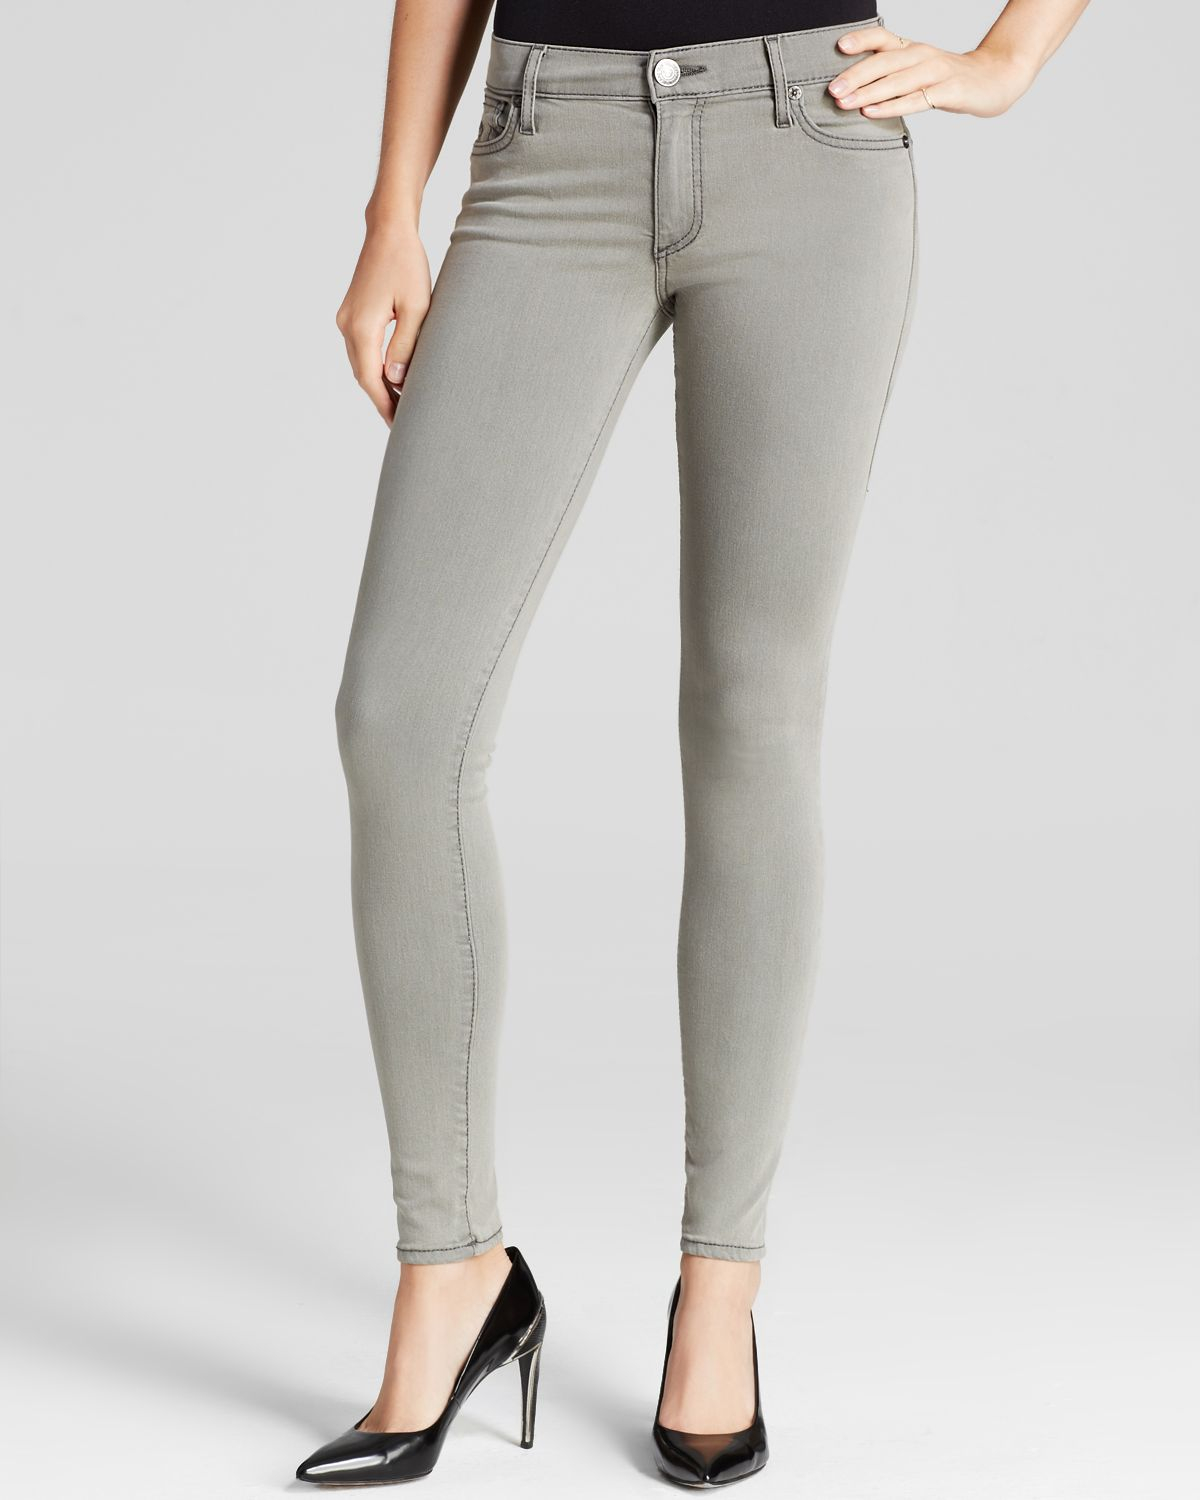 Browse the J Brand Mid-Rise Super Skinny, our skinniest mid-rise jean for women. The is a reinterpretation of the style that launched J Brand.